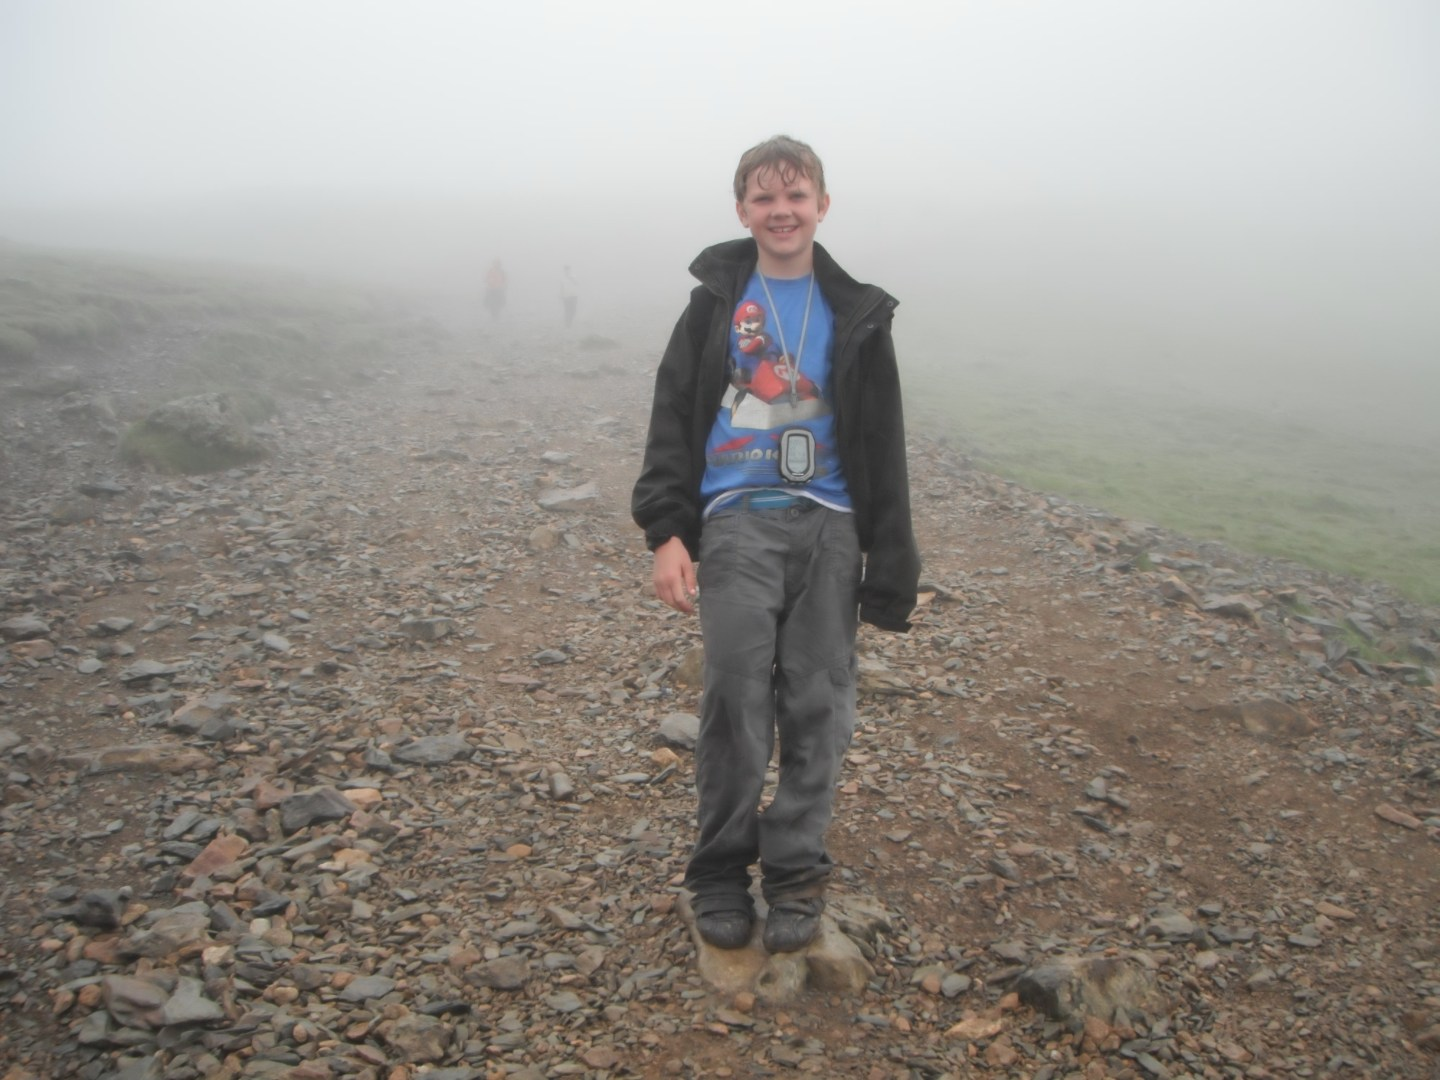 Lochlan at 863m on Mount Snowdon